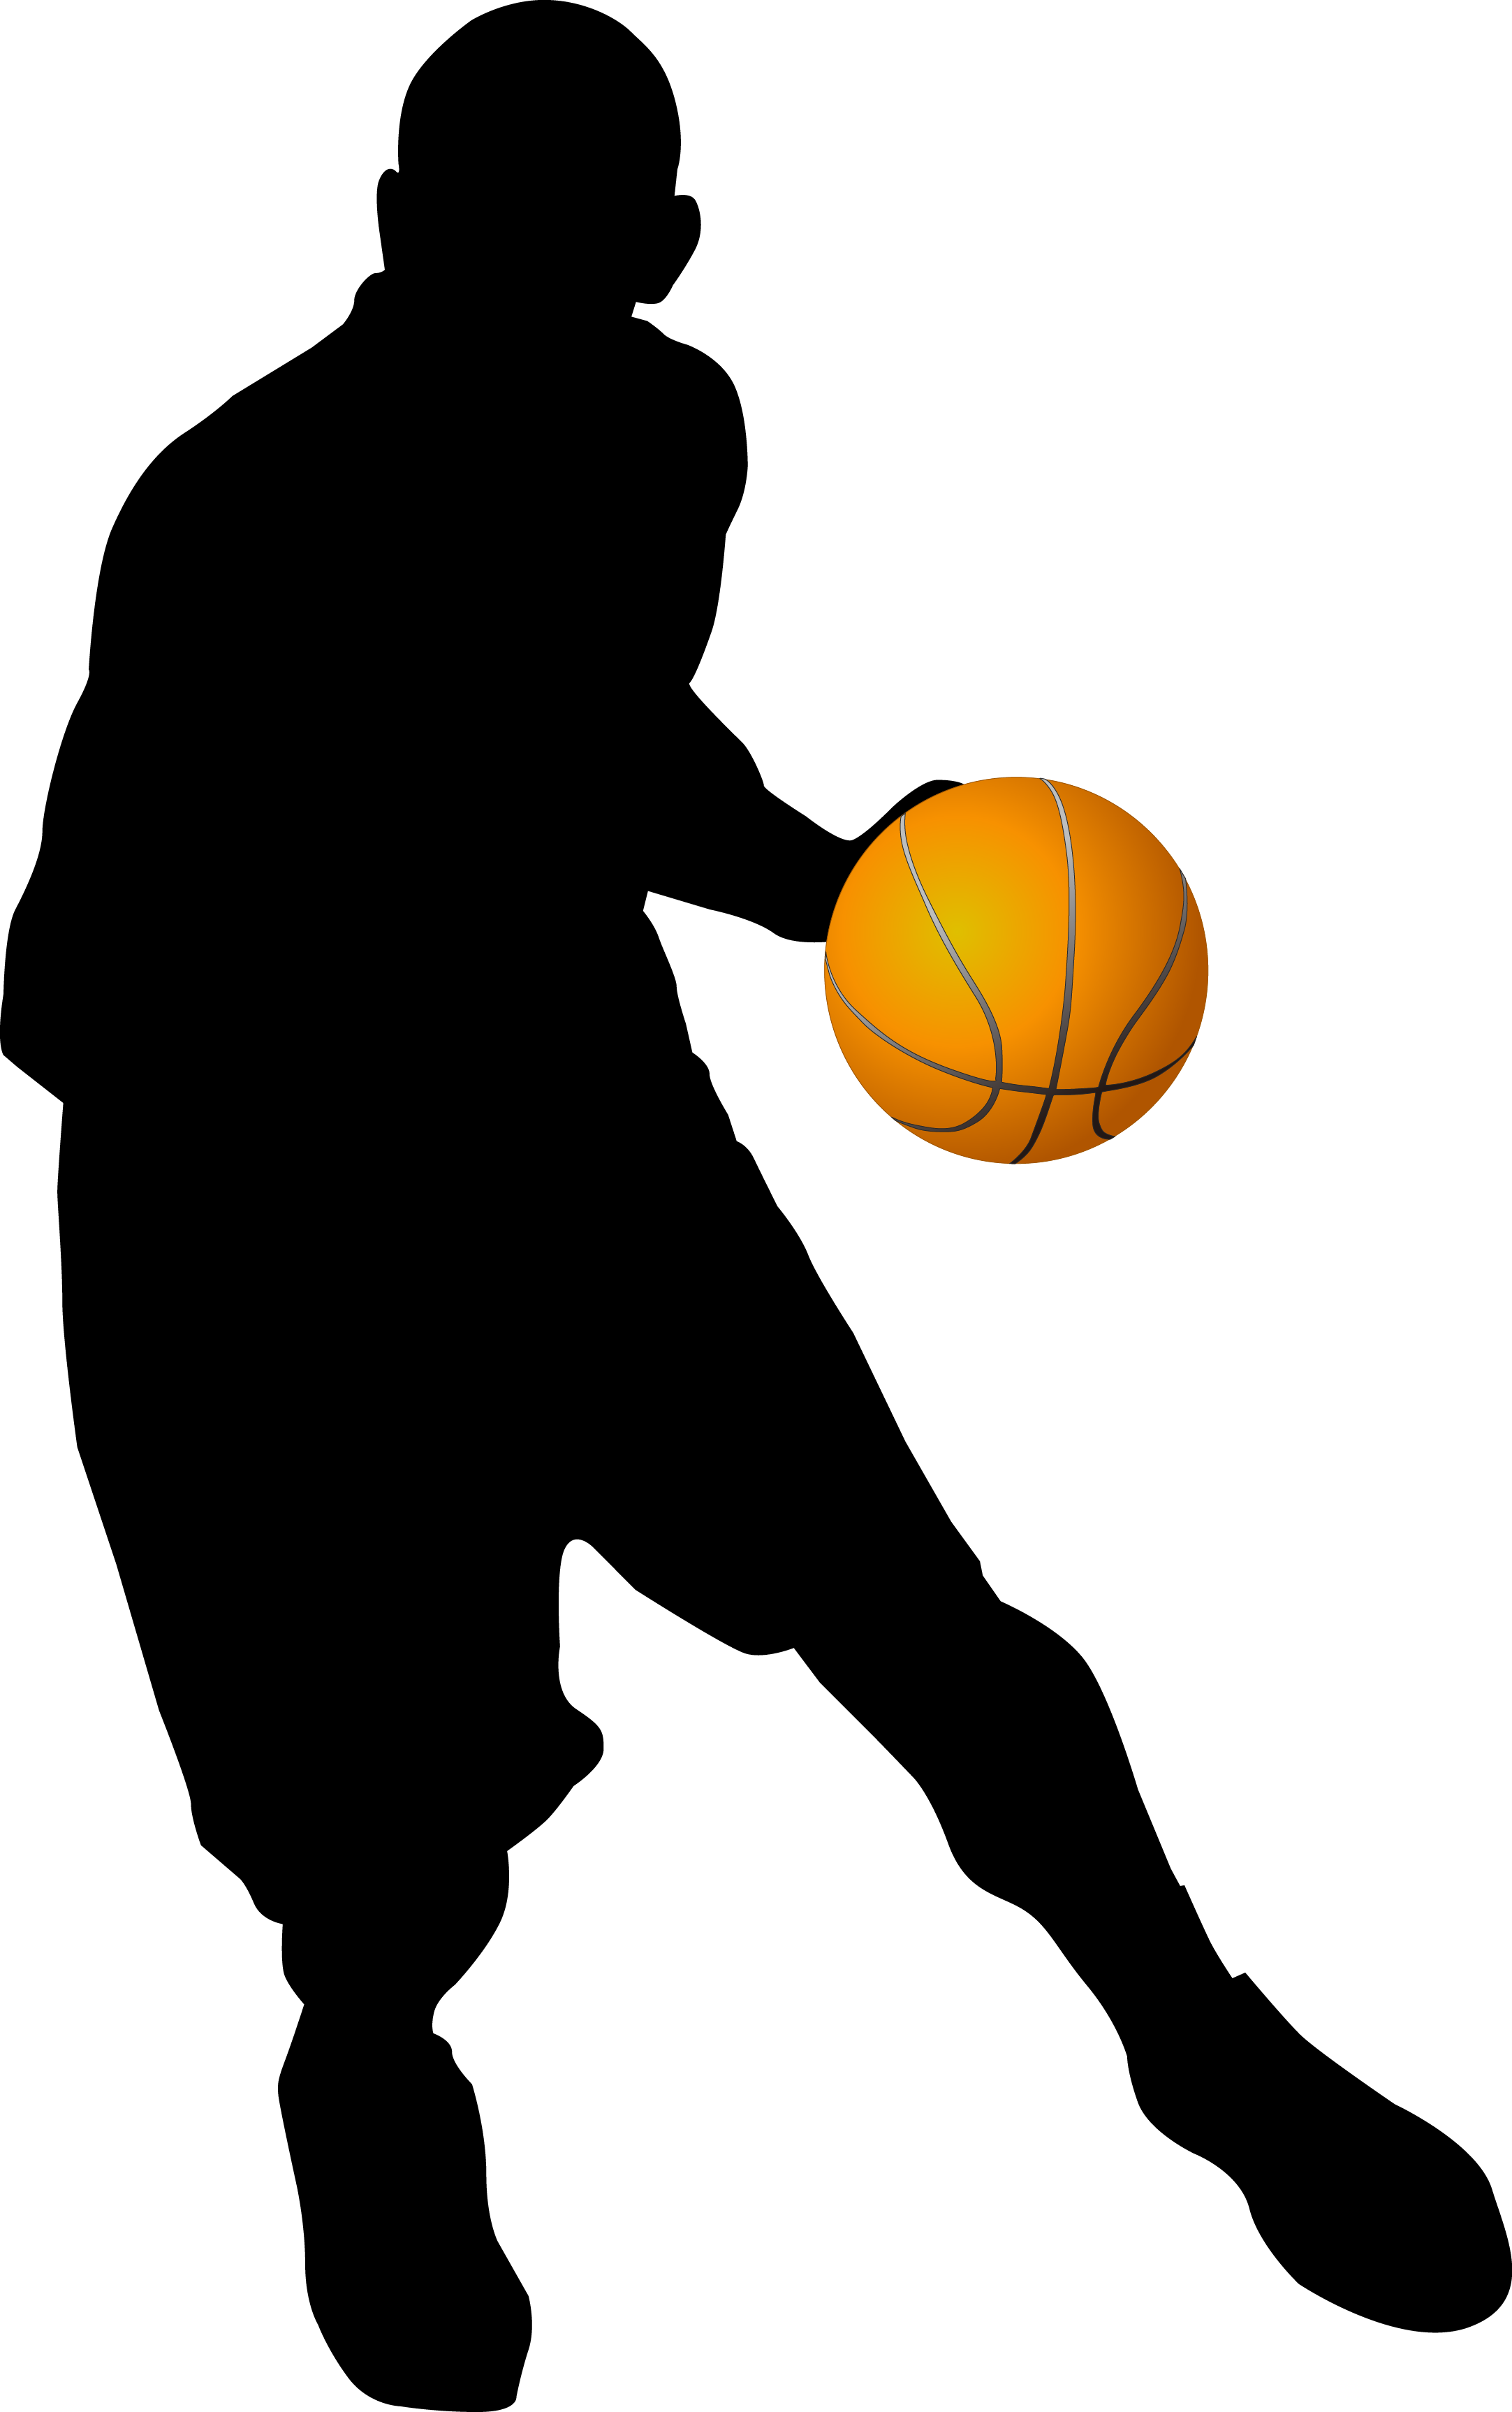 Basketball team free clipart vector transparent library Chicago Bulls Basketball player Clip art - Basketball player 2165 ... vector transparent library